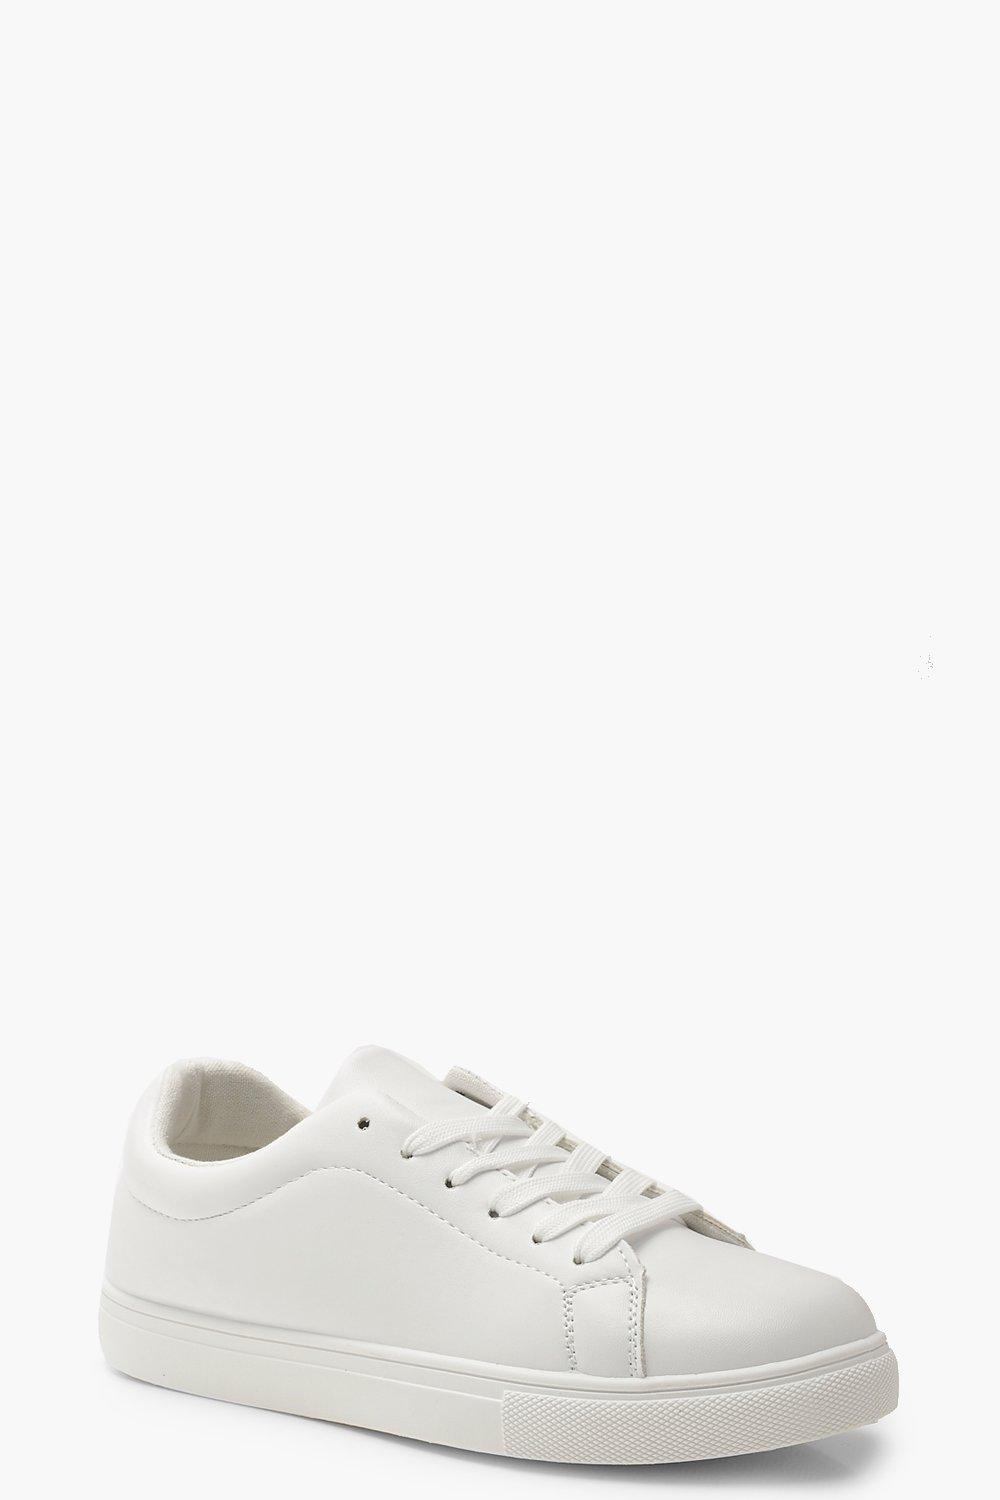 SHOES Lace Up Flat Trainers